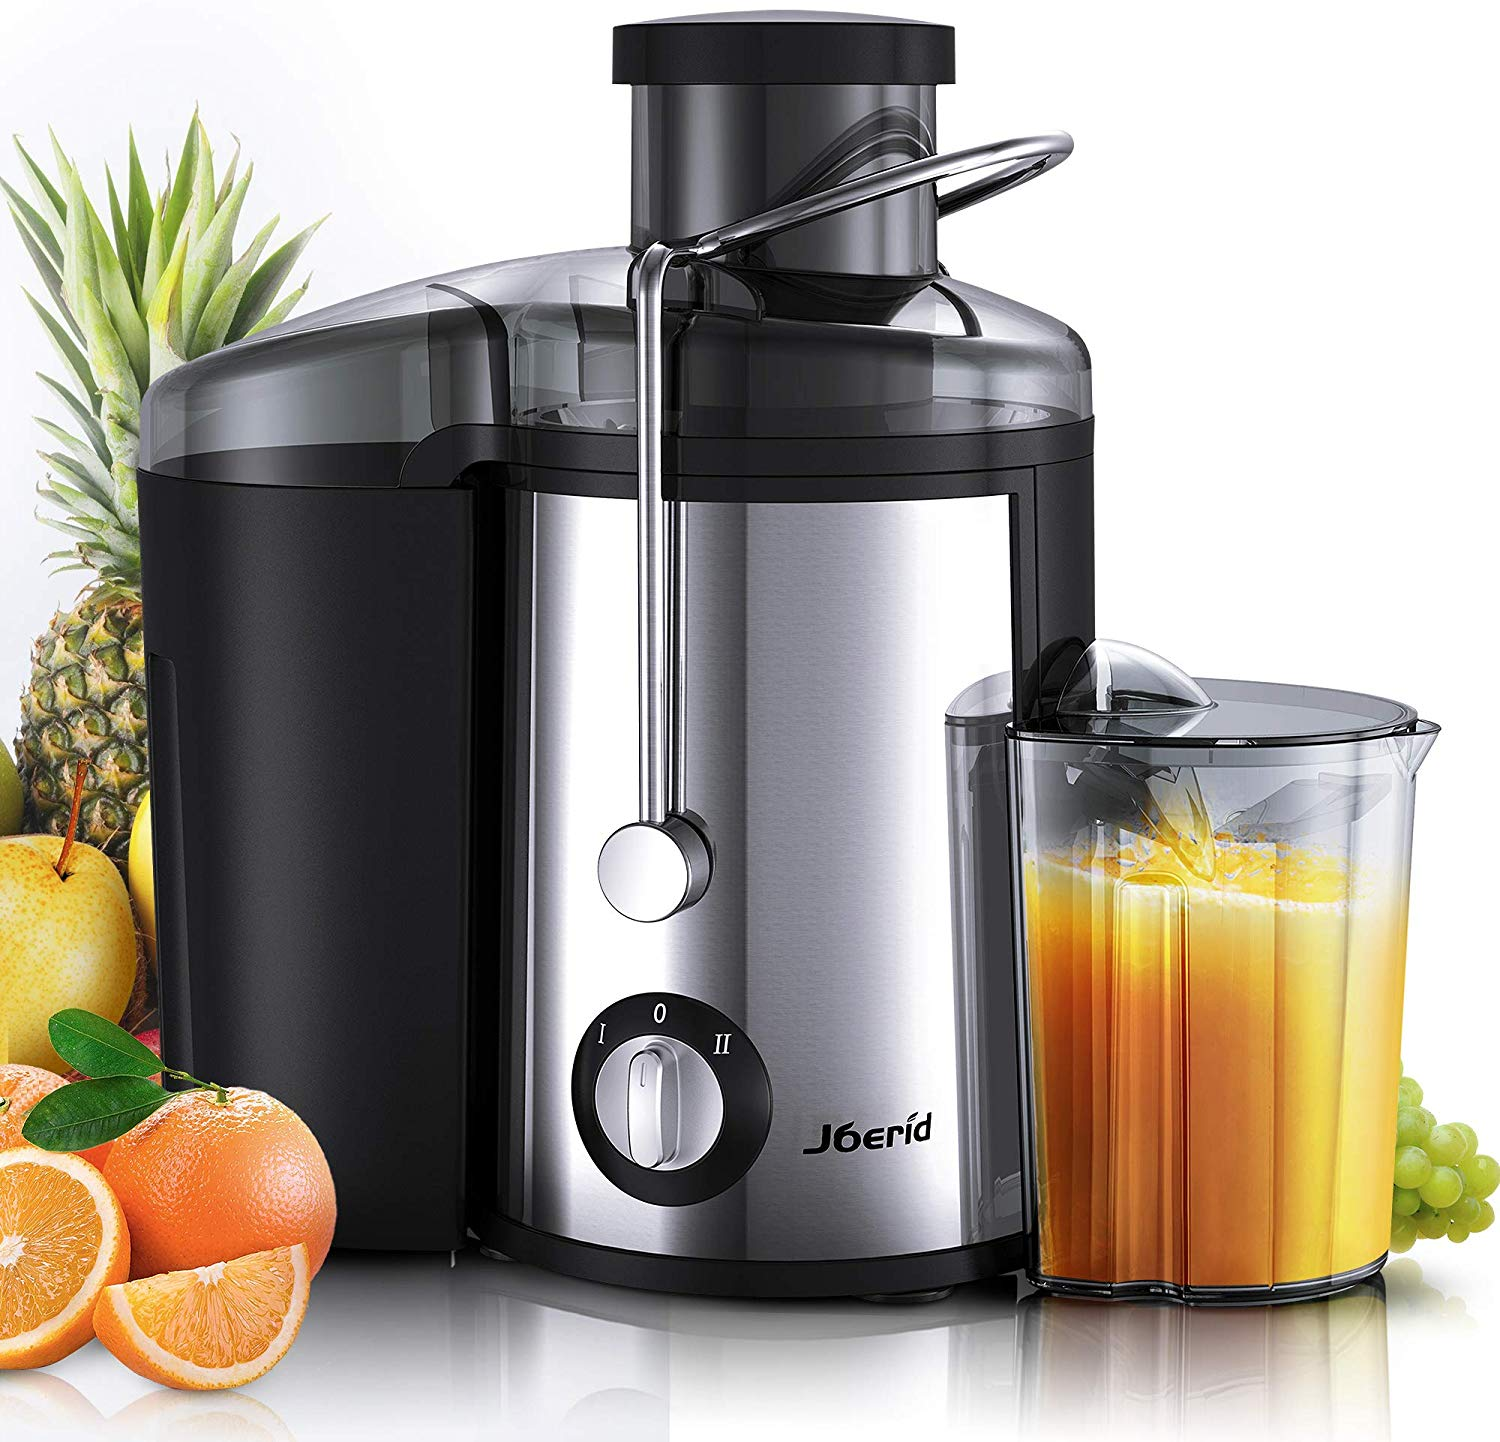 Joerid Juicer, [2020 Upgrade] Centrifugal Juicer Machine, Juice Extractor with Spout Adjustable, Lighter & Powerful, Easy to Clean & BPA-Free, Dishwasher Safe, Included Brush [Black]